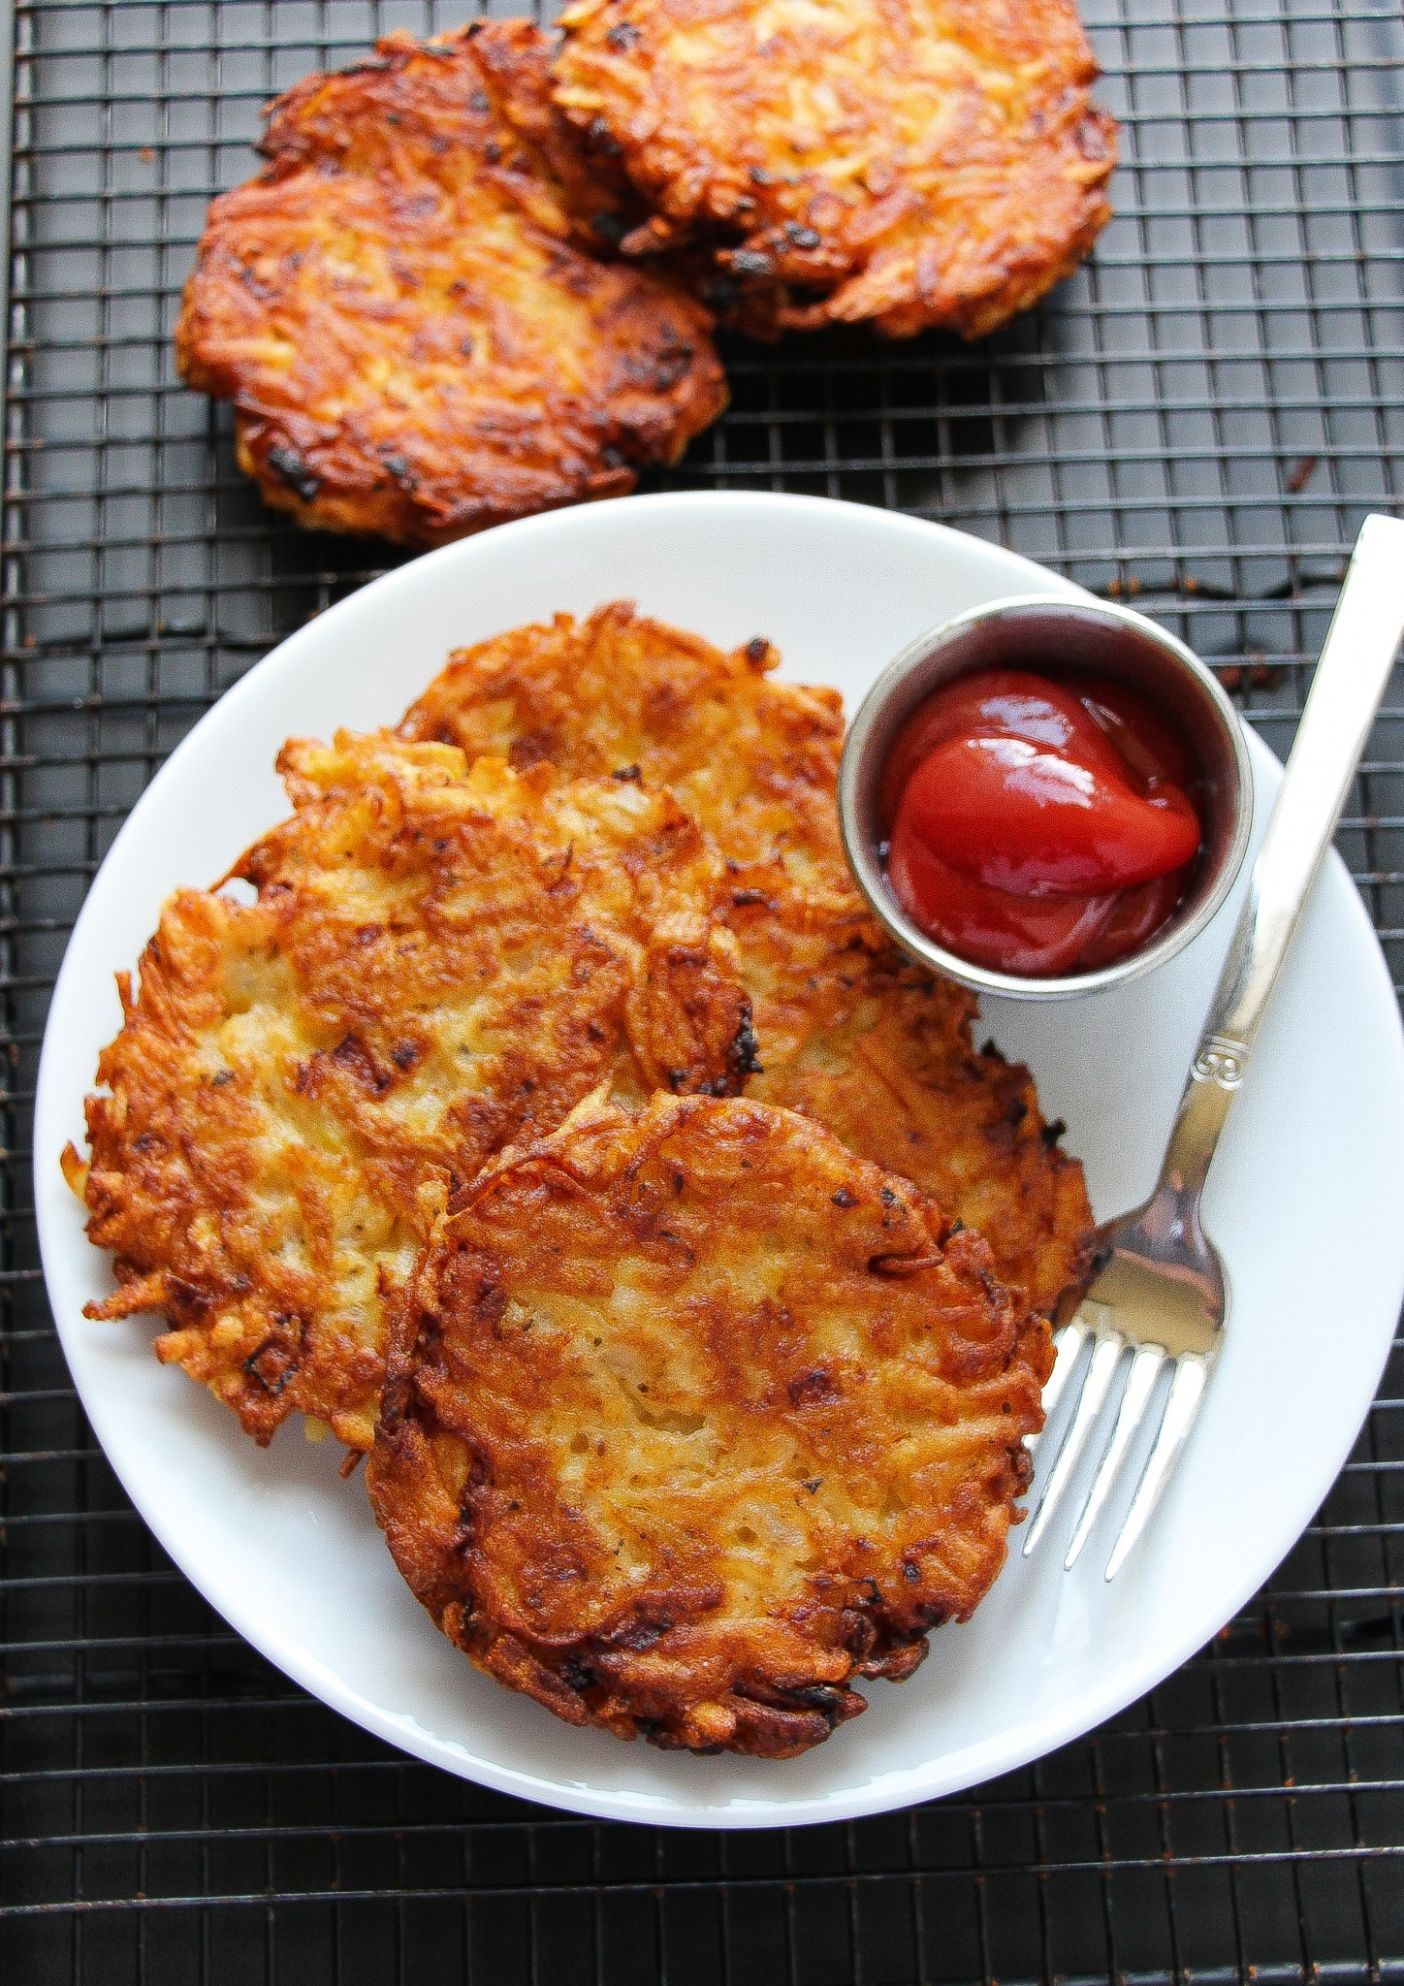 Extra Crispy Restaurant Style Hashbrown Patties